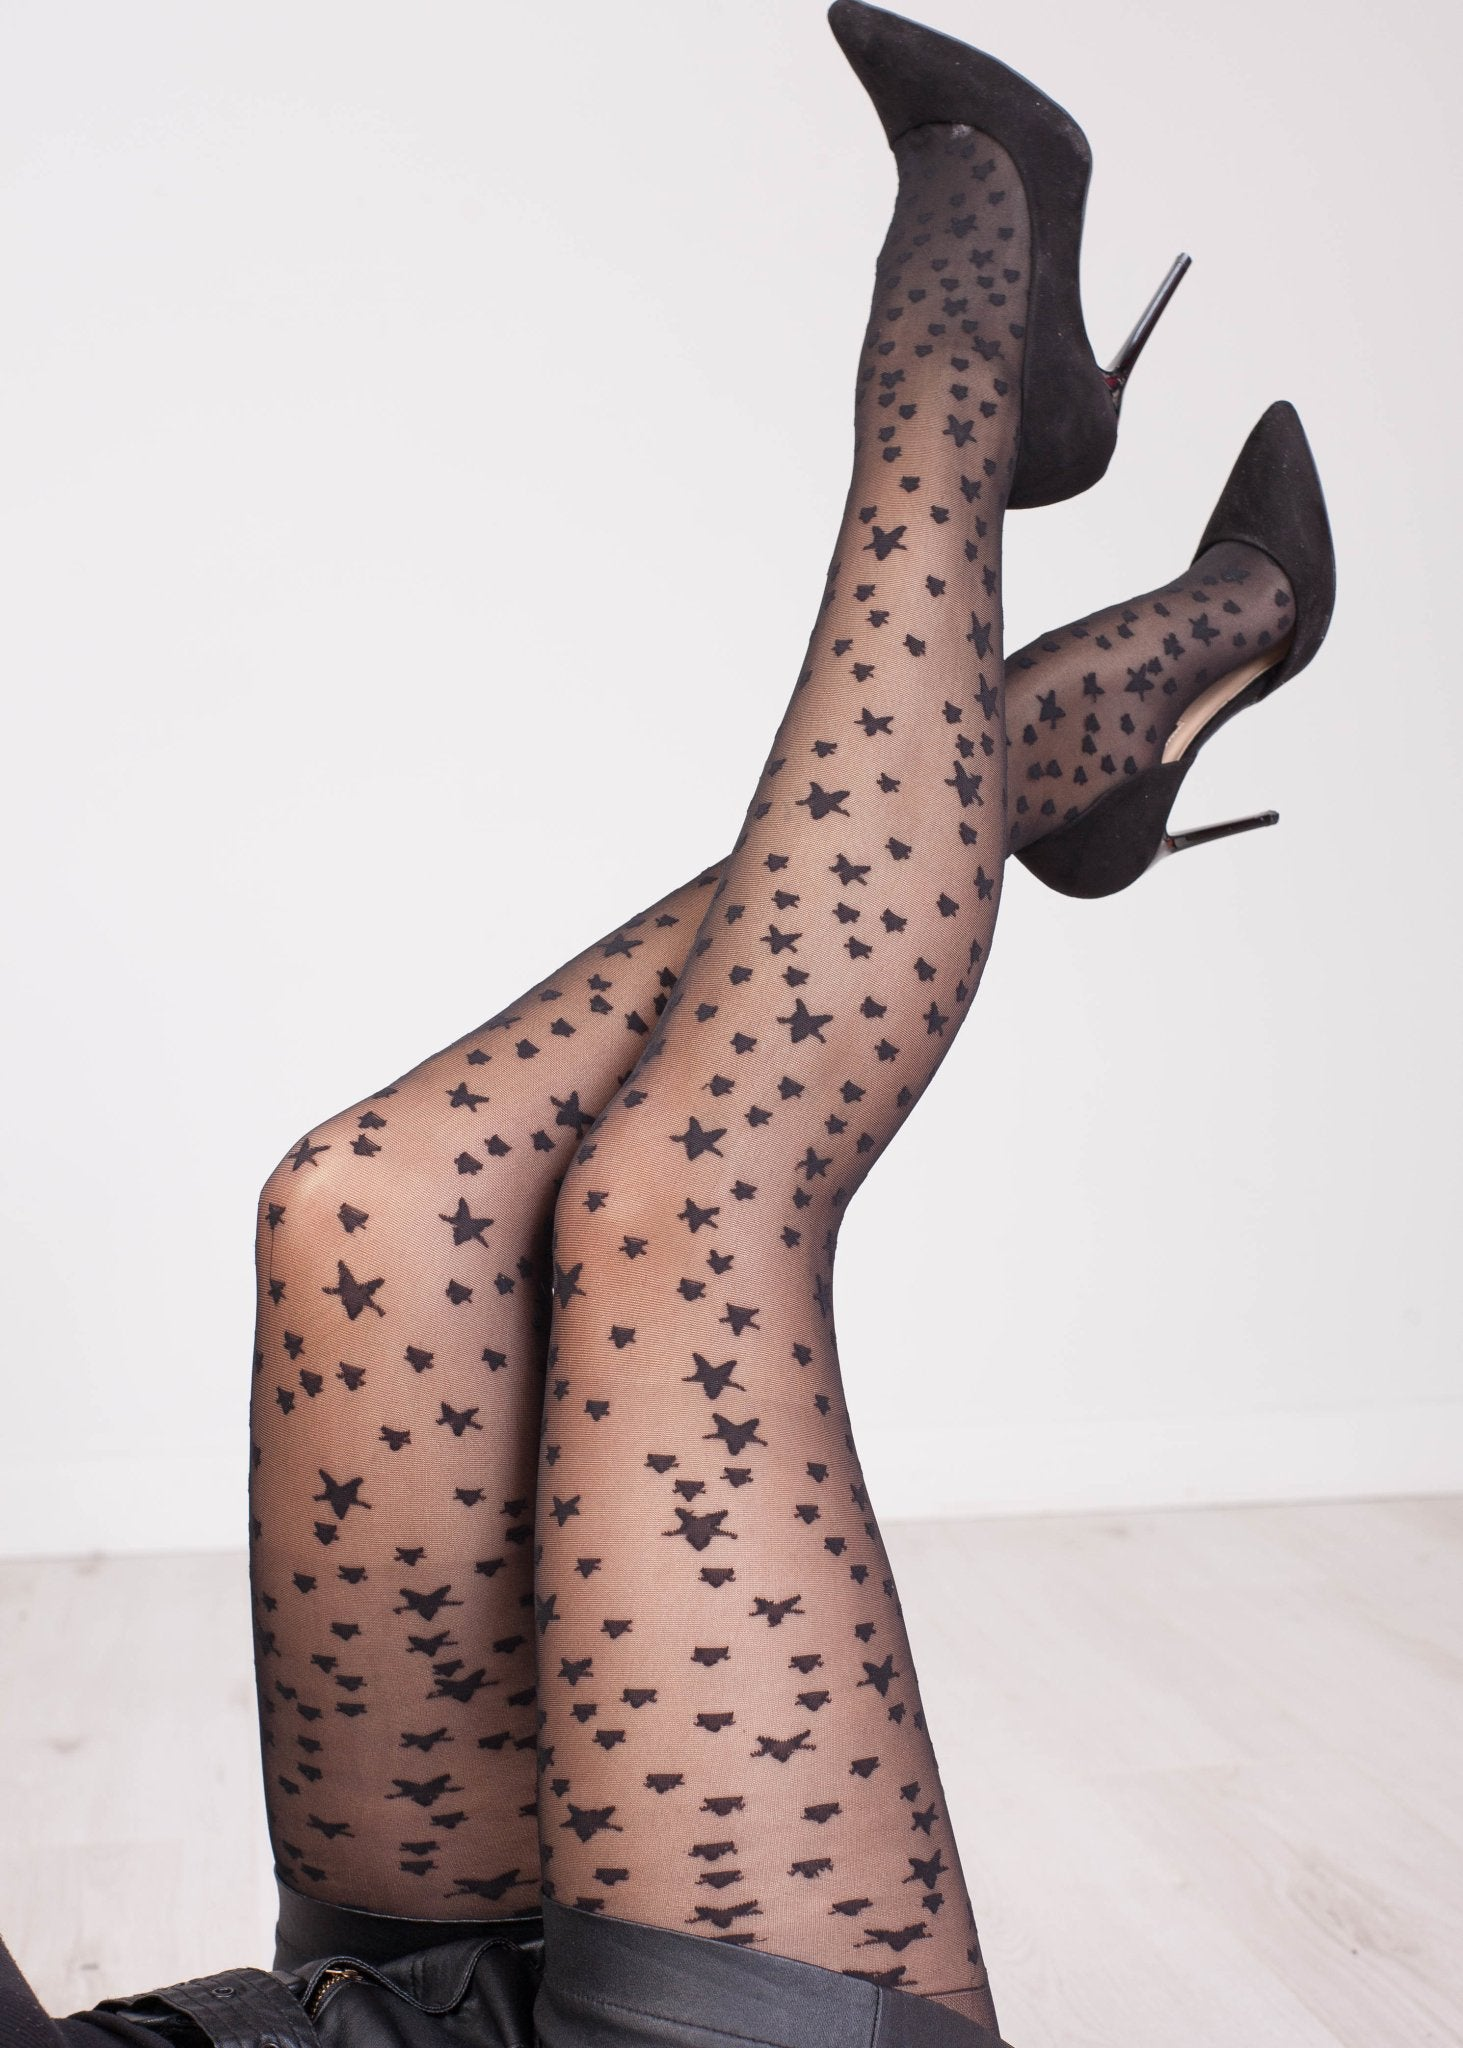 Priya Star Tights - The Walk in Wardrobe